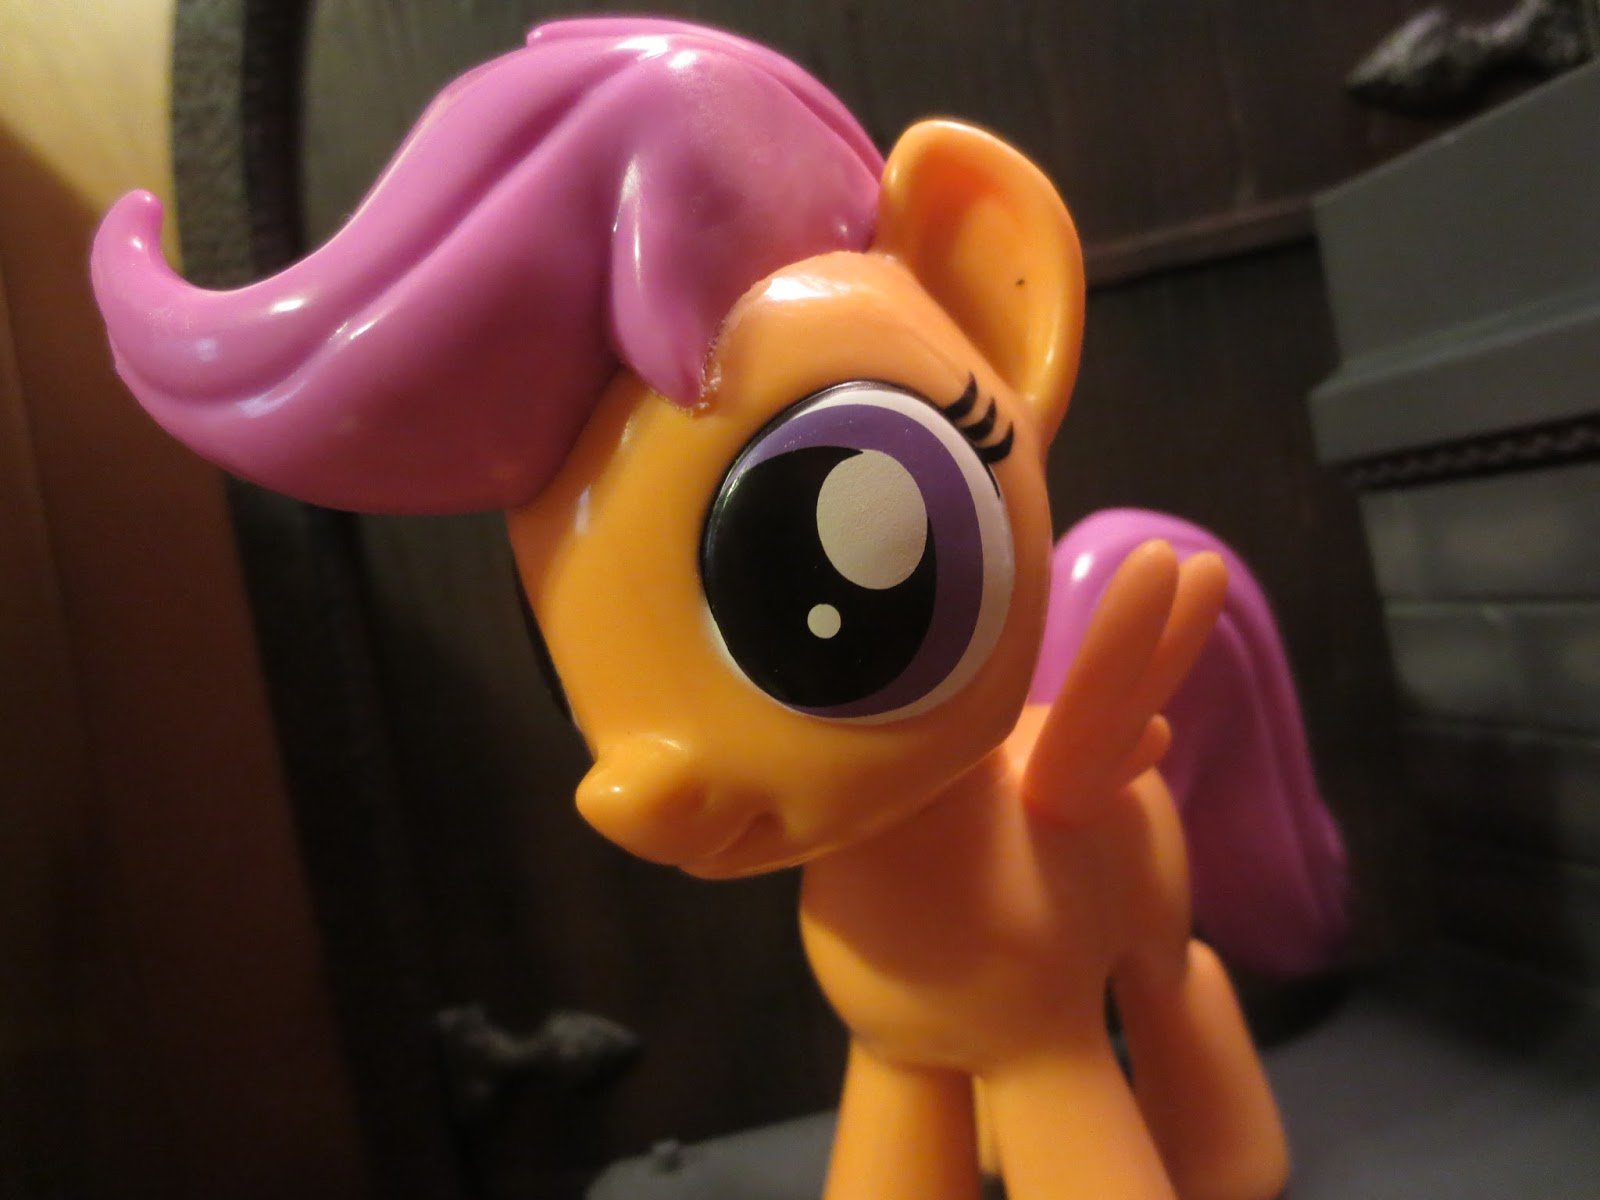 Action Figure Barbecue Action Figure Review Scootaloo From My Little Pony Vinyl Collectibles By Funko Scootaloo is one of the three characters that make up the cutie mark crusaders, who is tomboyish and idolizes rainbow dash. action figure barbecue